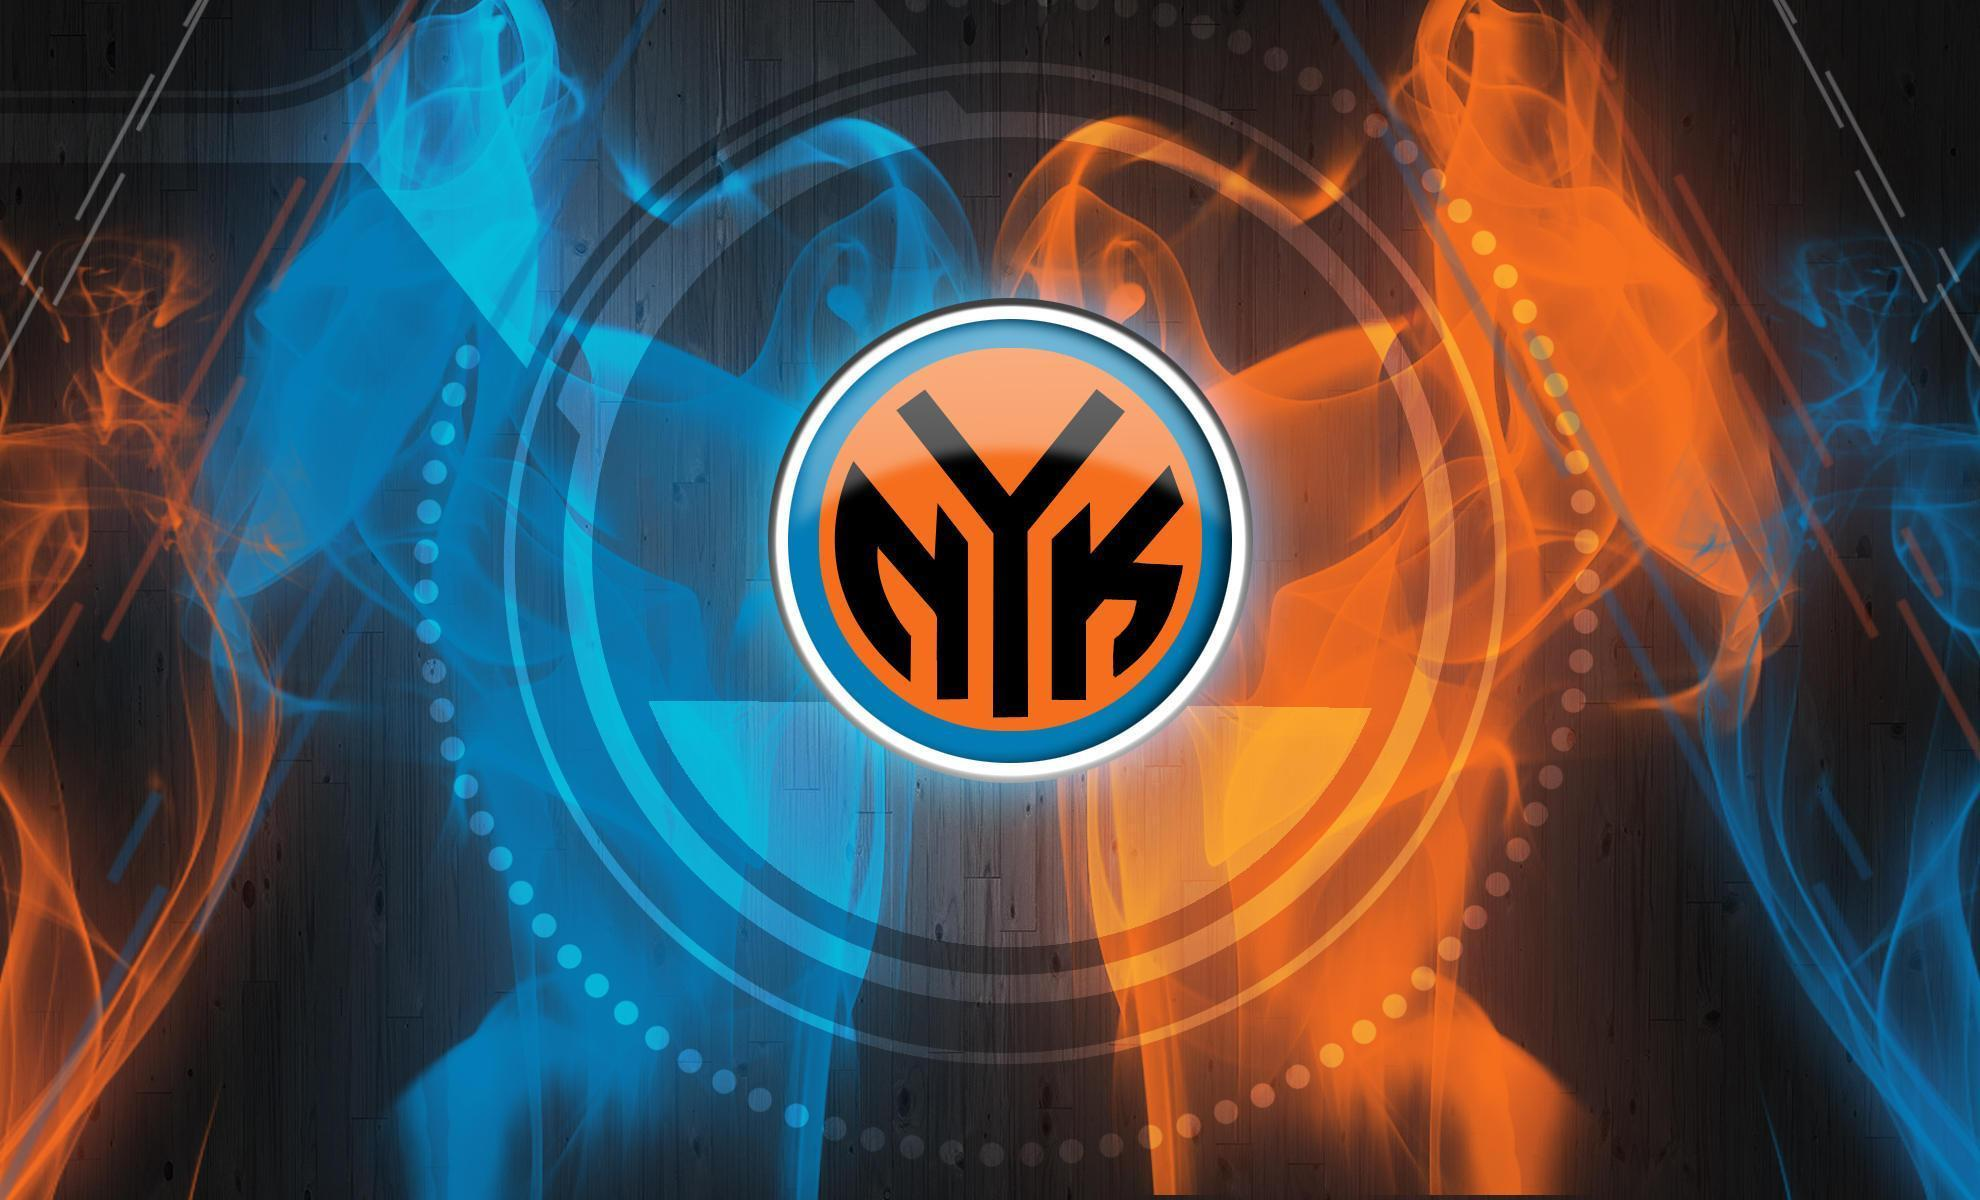 Knicks Logo Wallpaper Pictures to Pin on Pinterest - PinsDaddy